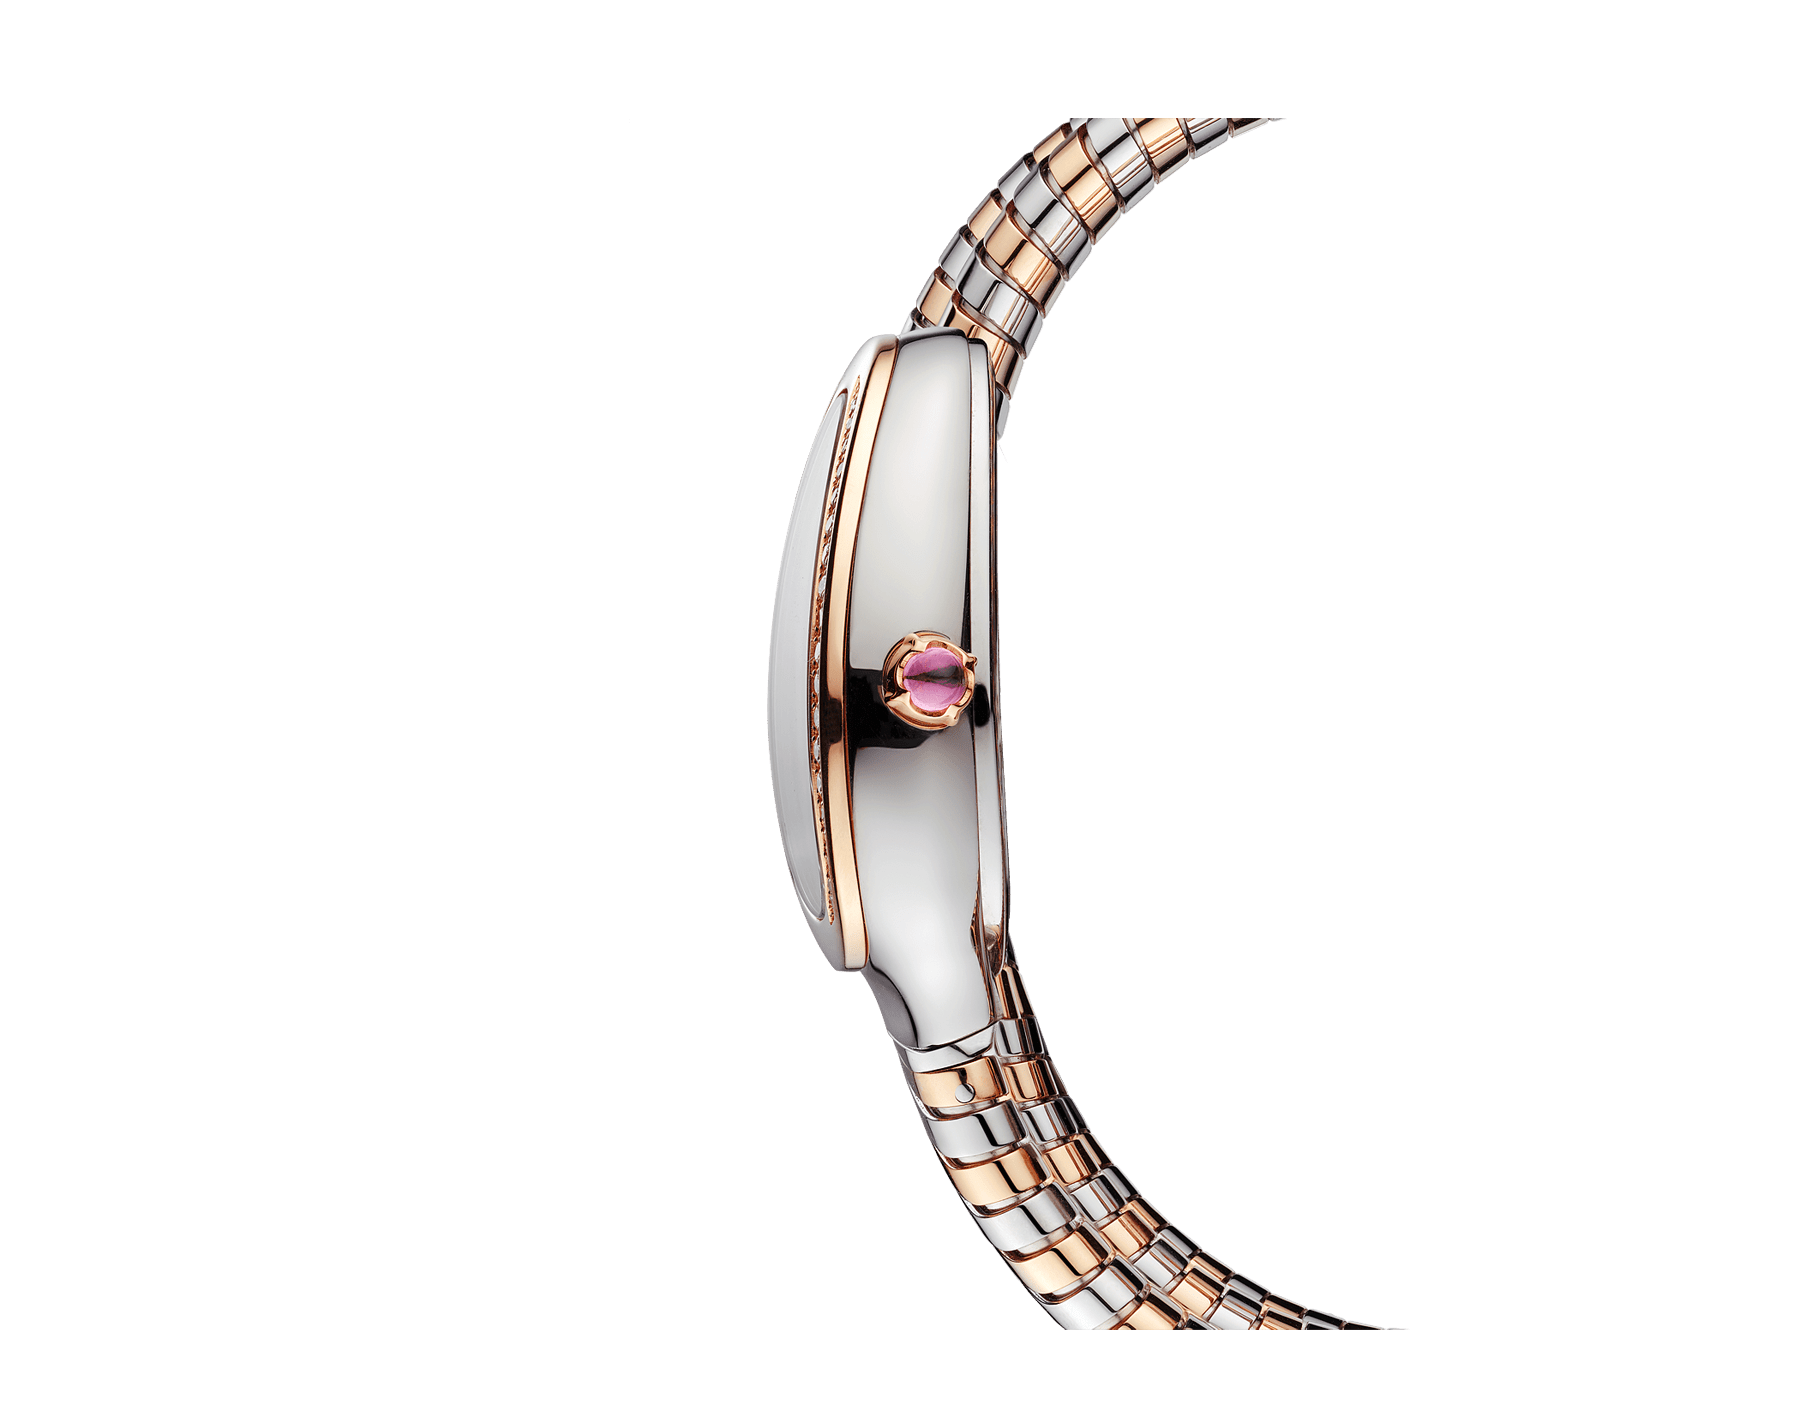 Serpenti Tubogas double spiral watch with stainless steel case, 18 kt rose gold bezel set with brilliant-cut diamonds, brown dial with guilloché soleil treatment, stainless steel and 18 kt rose gold bracelet 103070 image 3